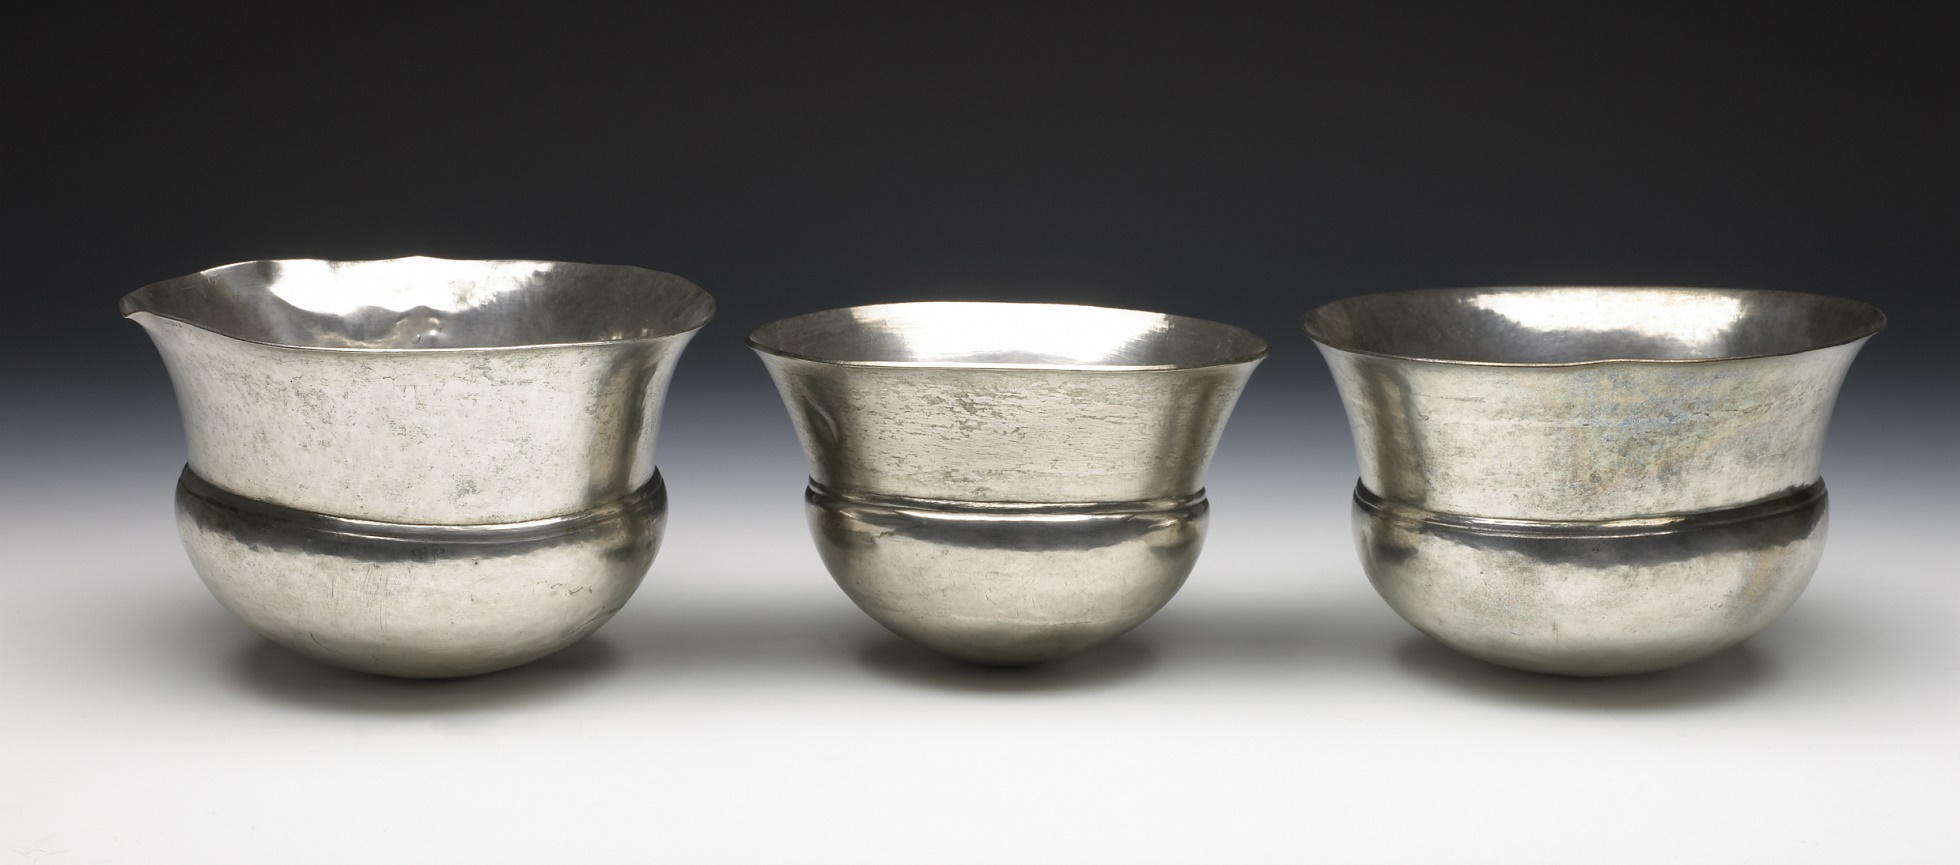 Deep bowl hammered from a single, thick piece of silver sheet, flared outwards above 'shoulder' line